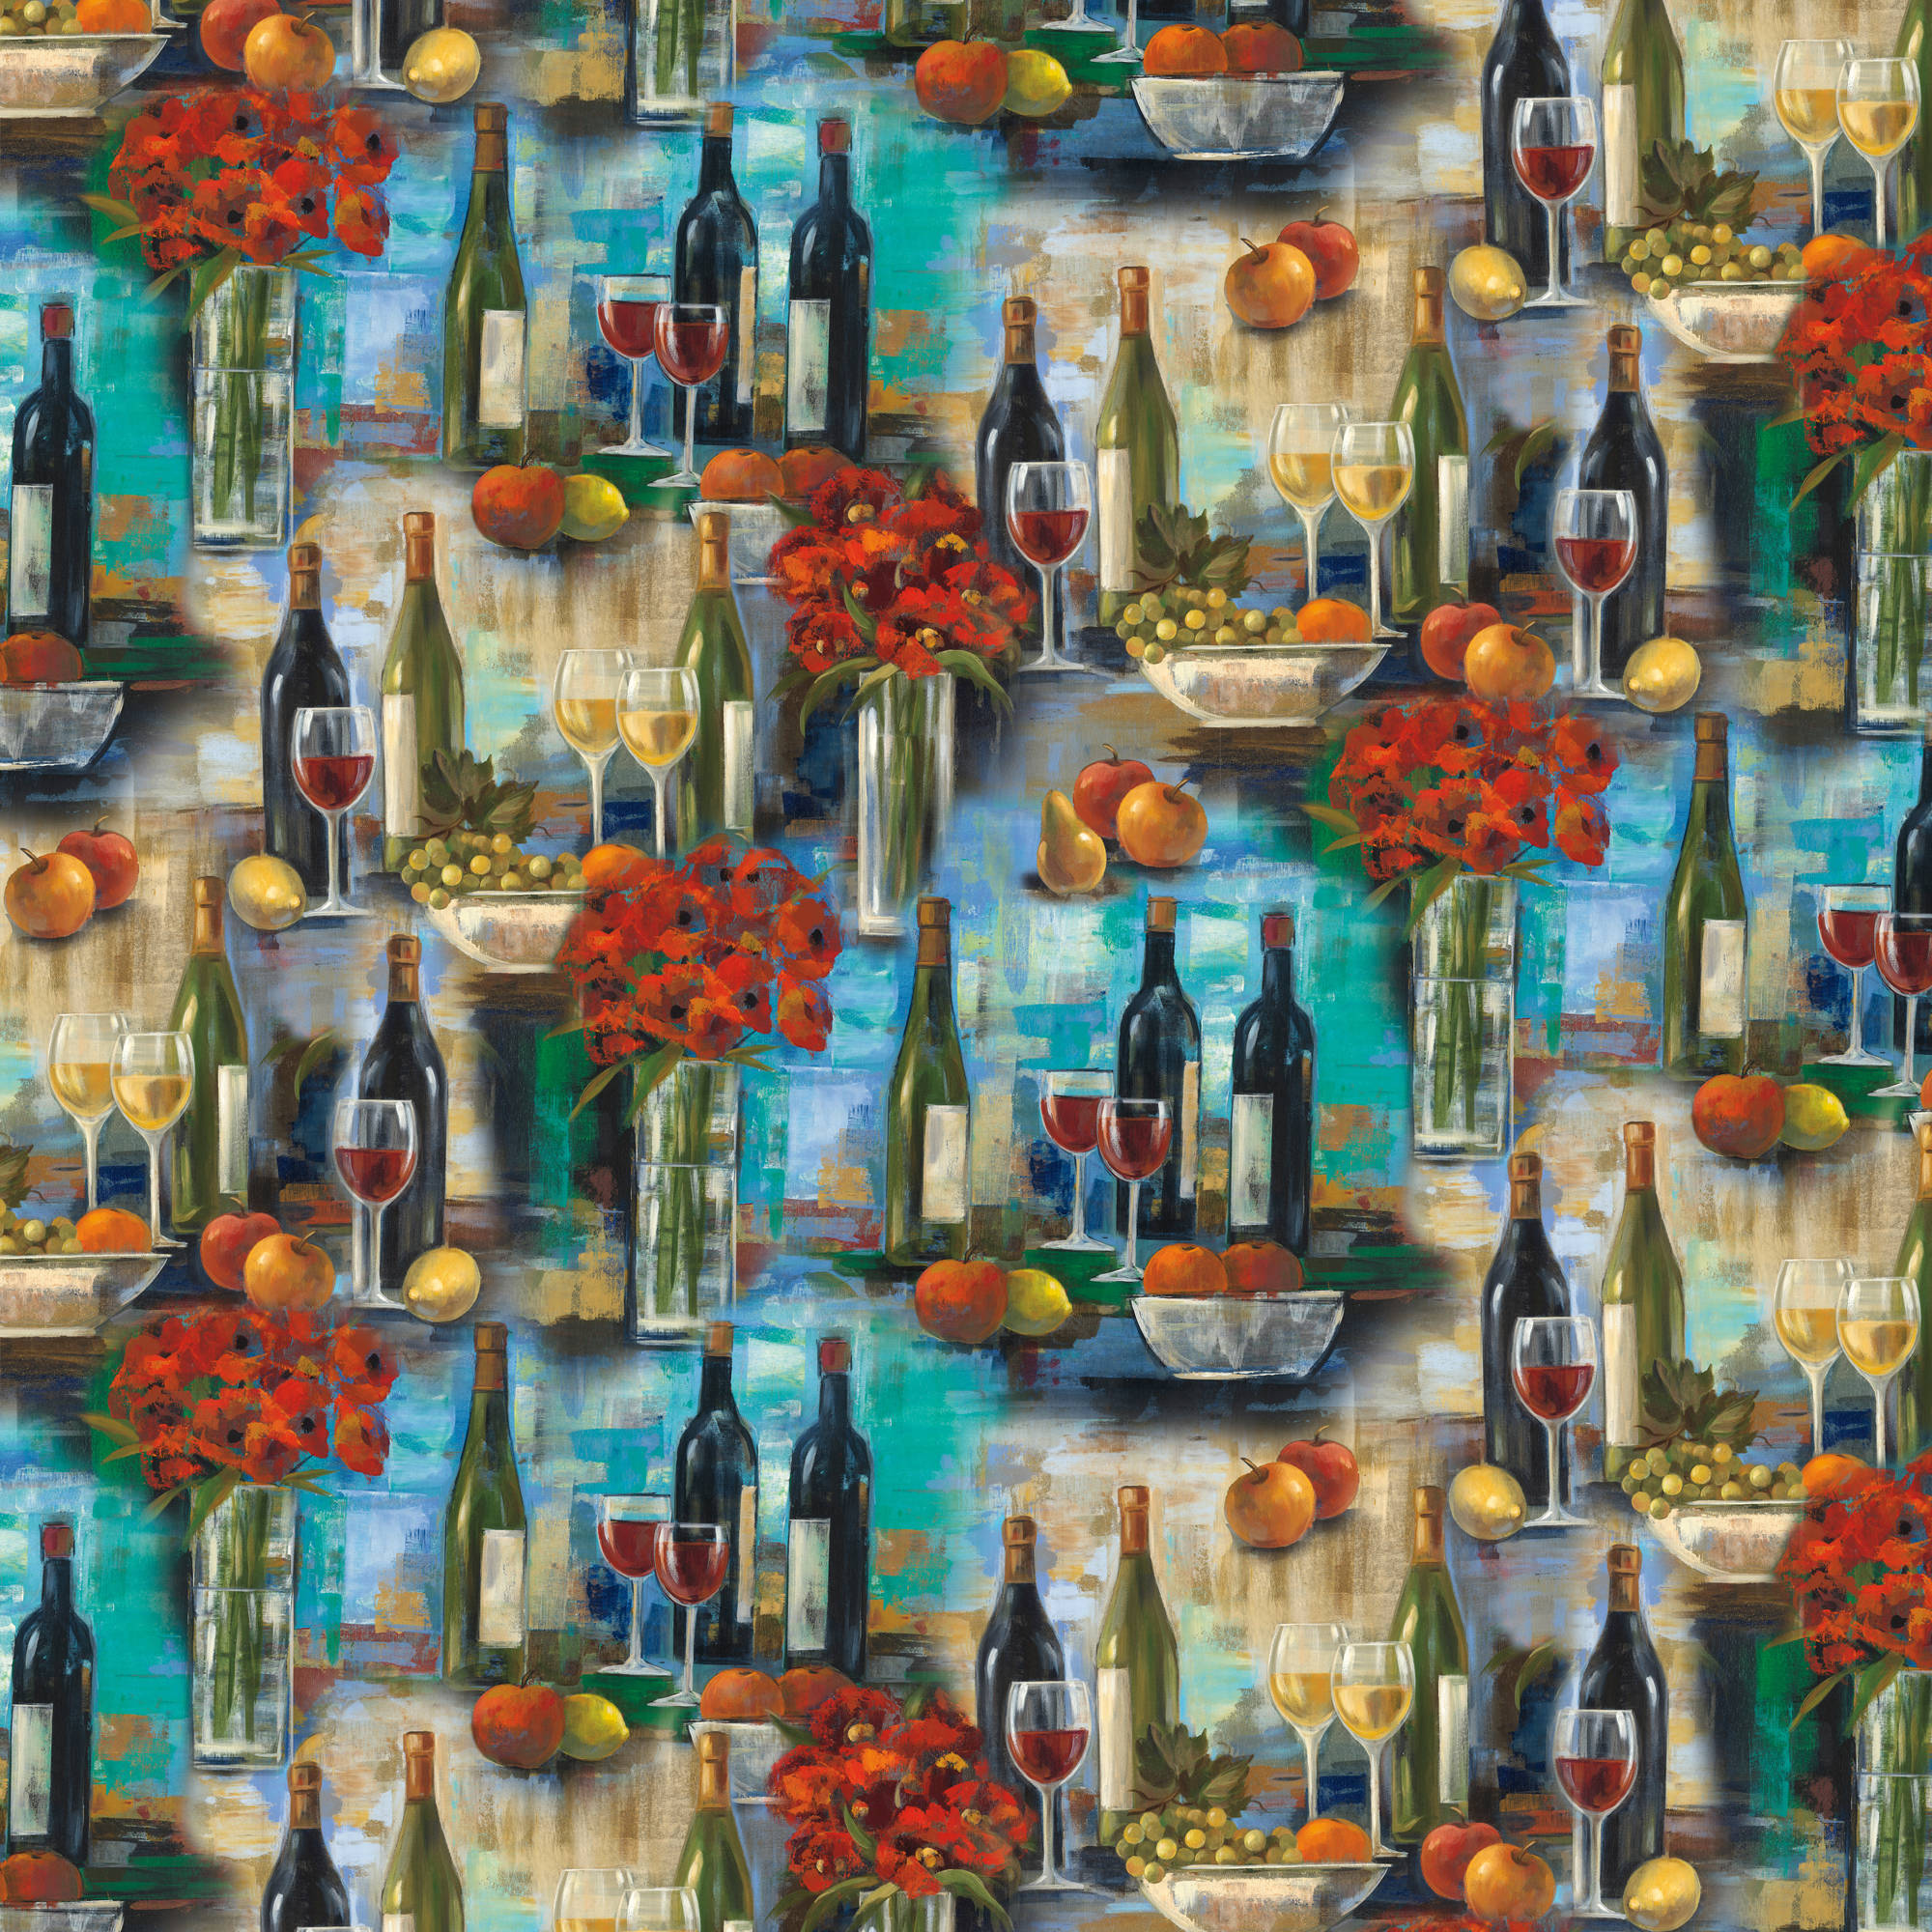 """Afternoon Delight Quilting Cotton Fabric By The Yard, 44"""""" WA-3570-4C-1"